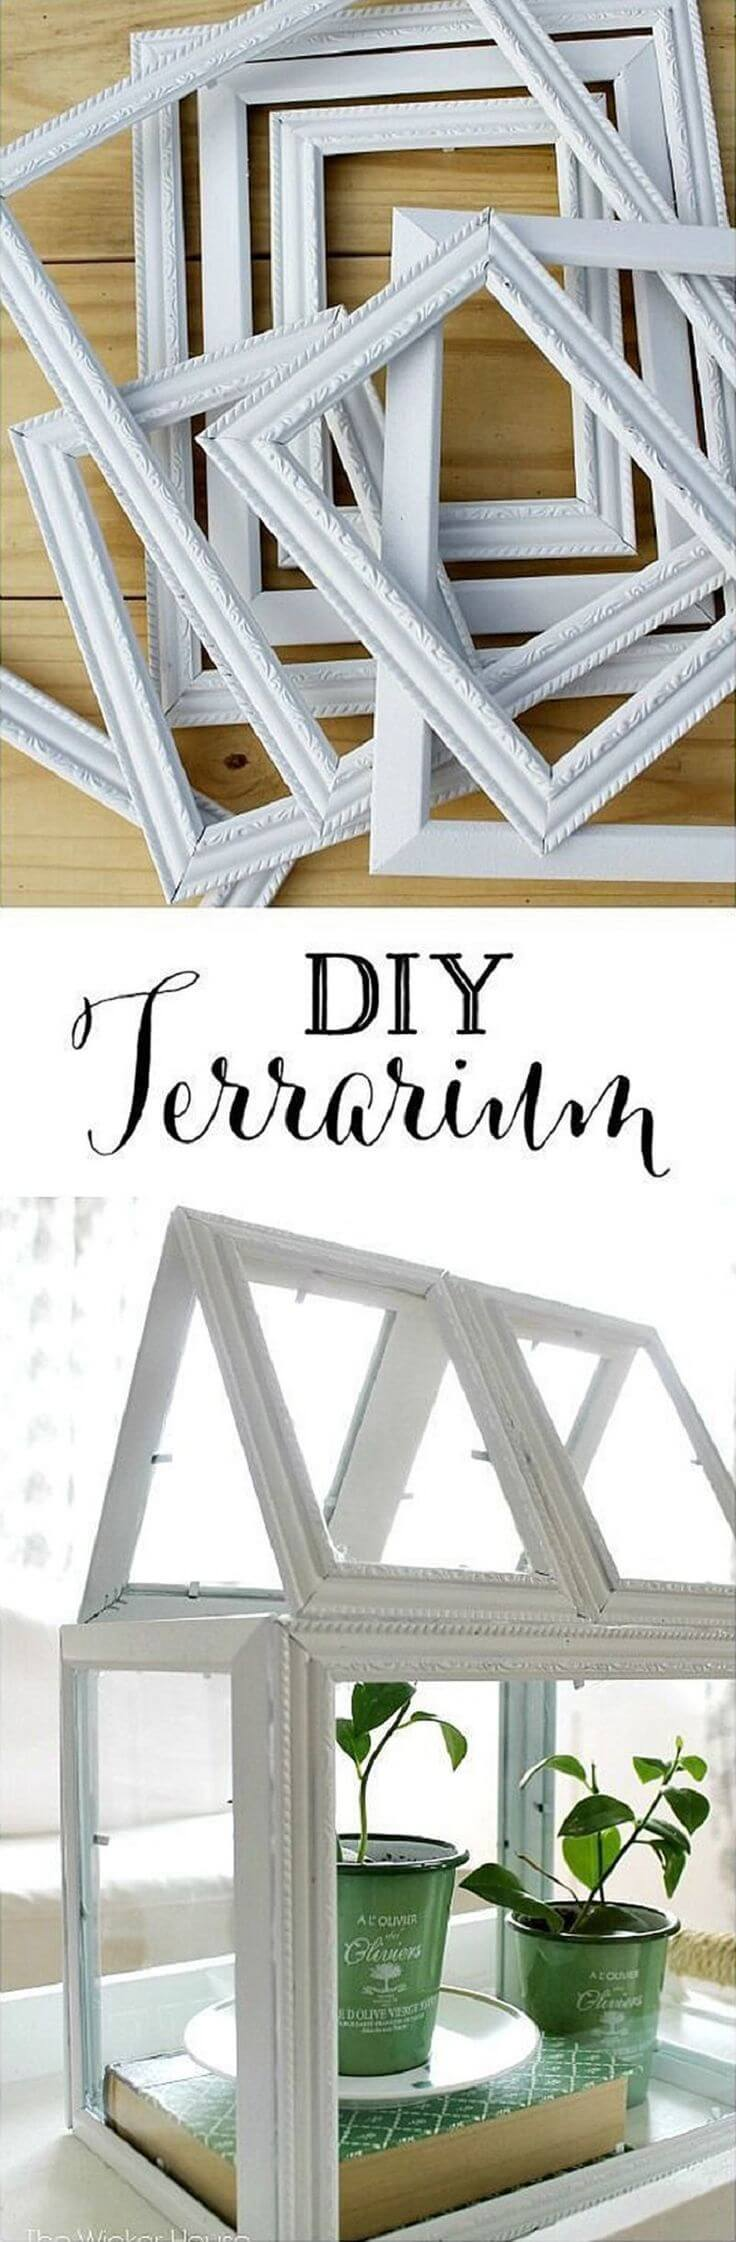 Build a Terrarium with Frames and Glue